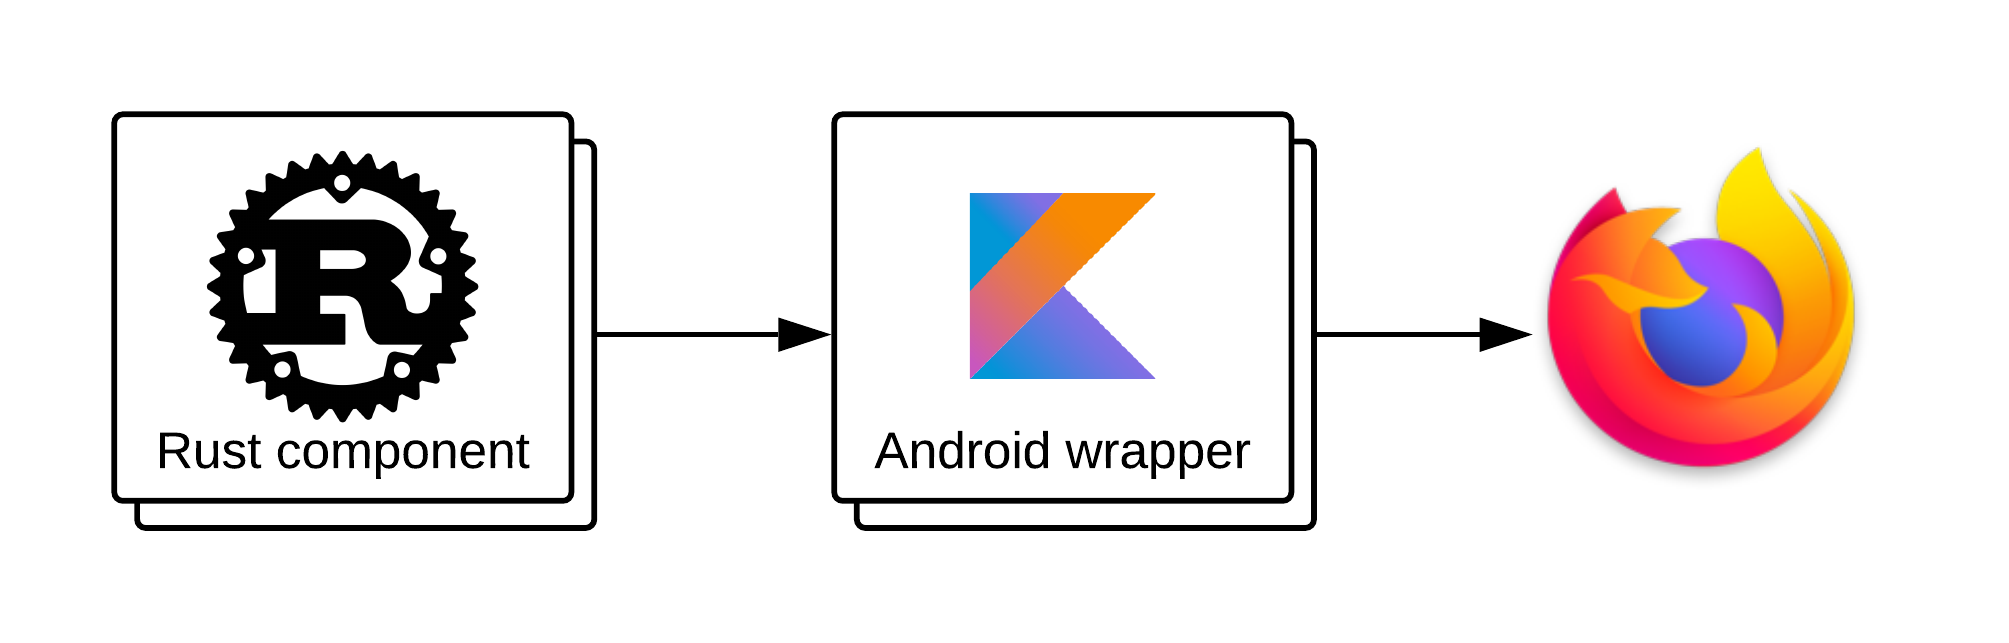 Rust component bundled in an Android wrapper